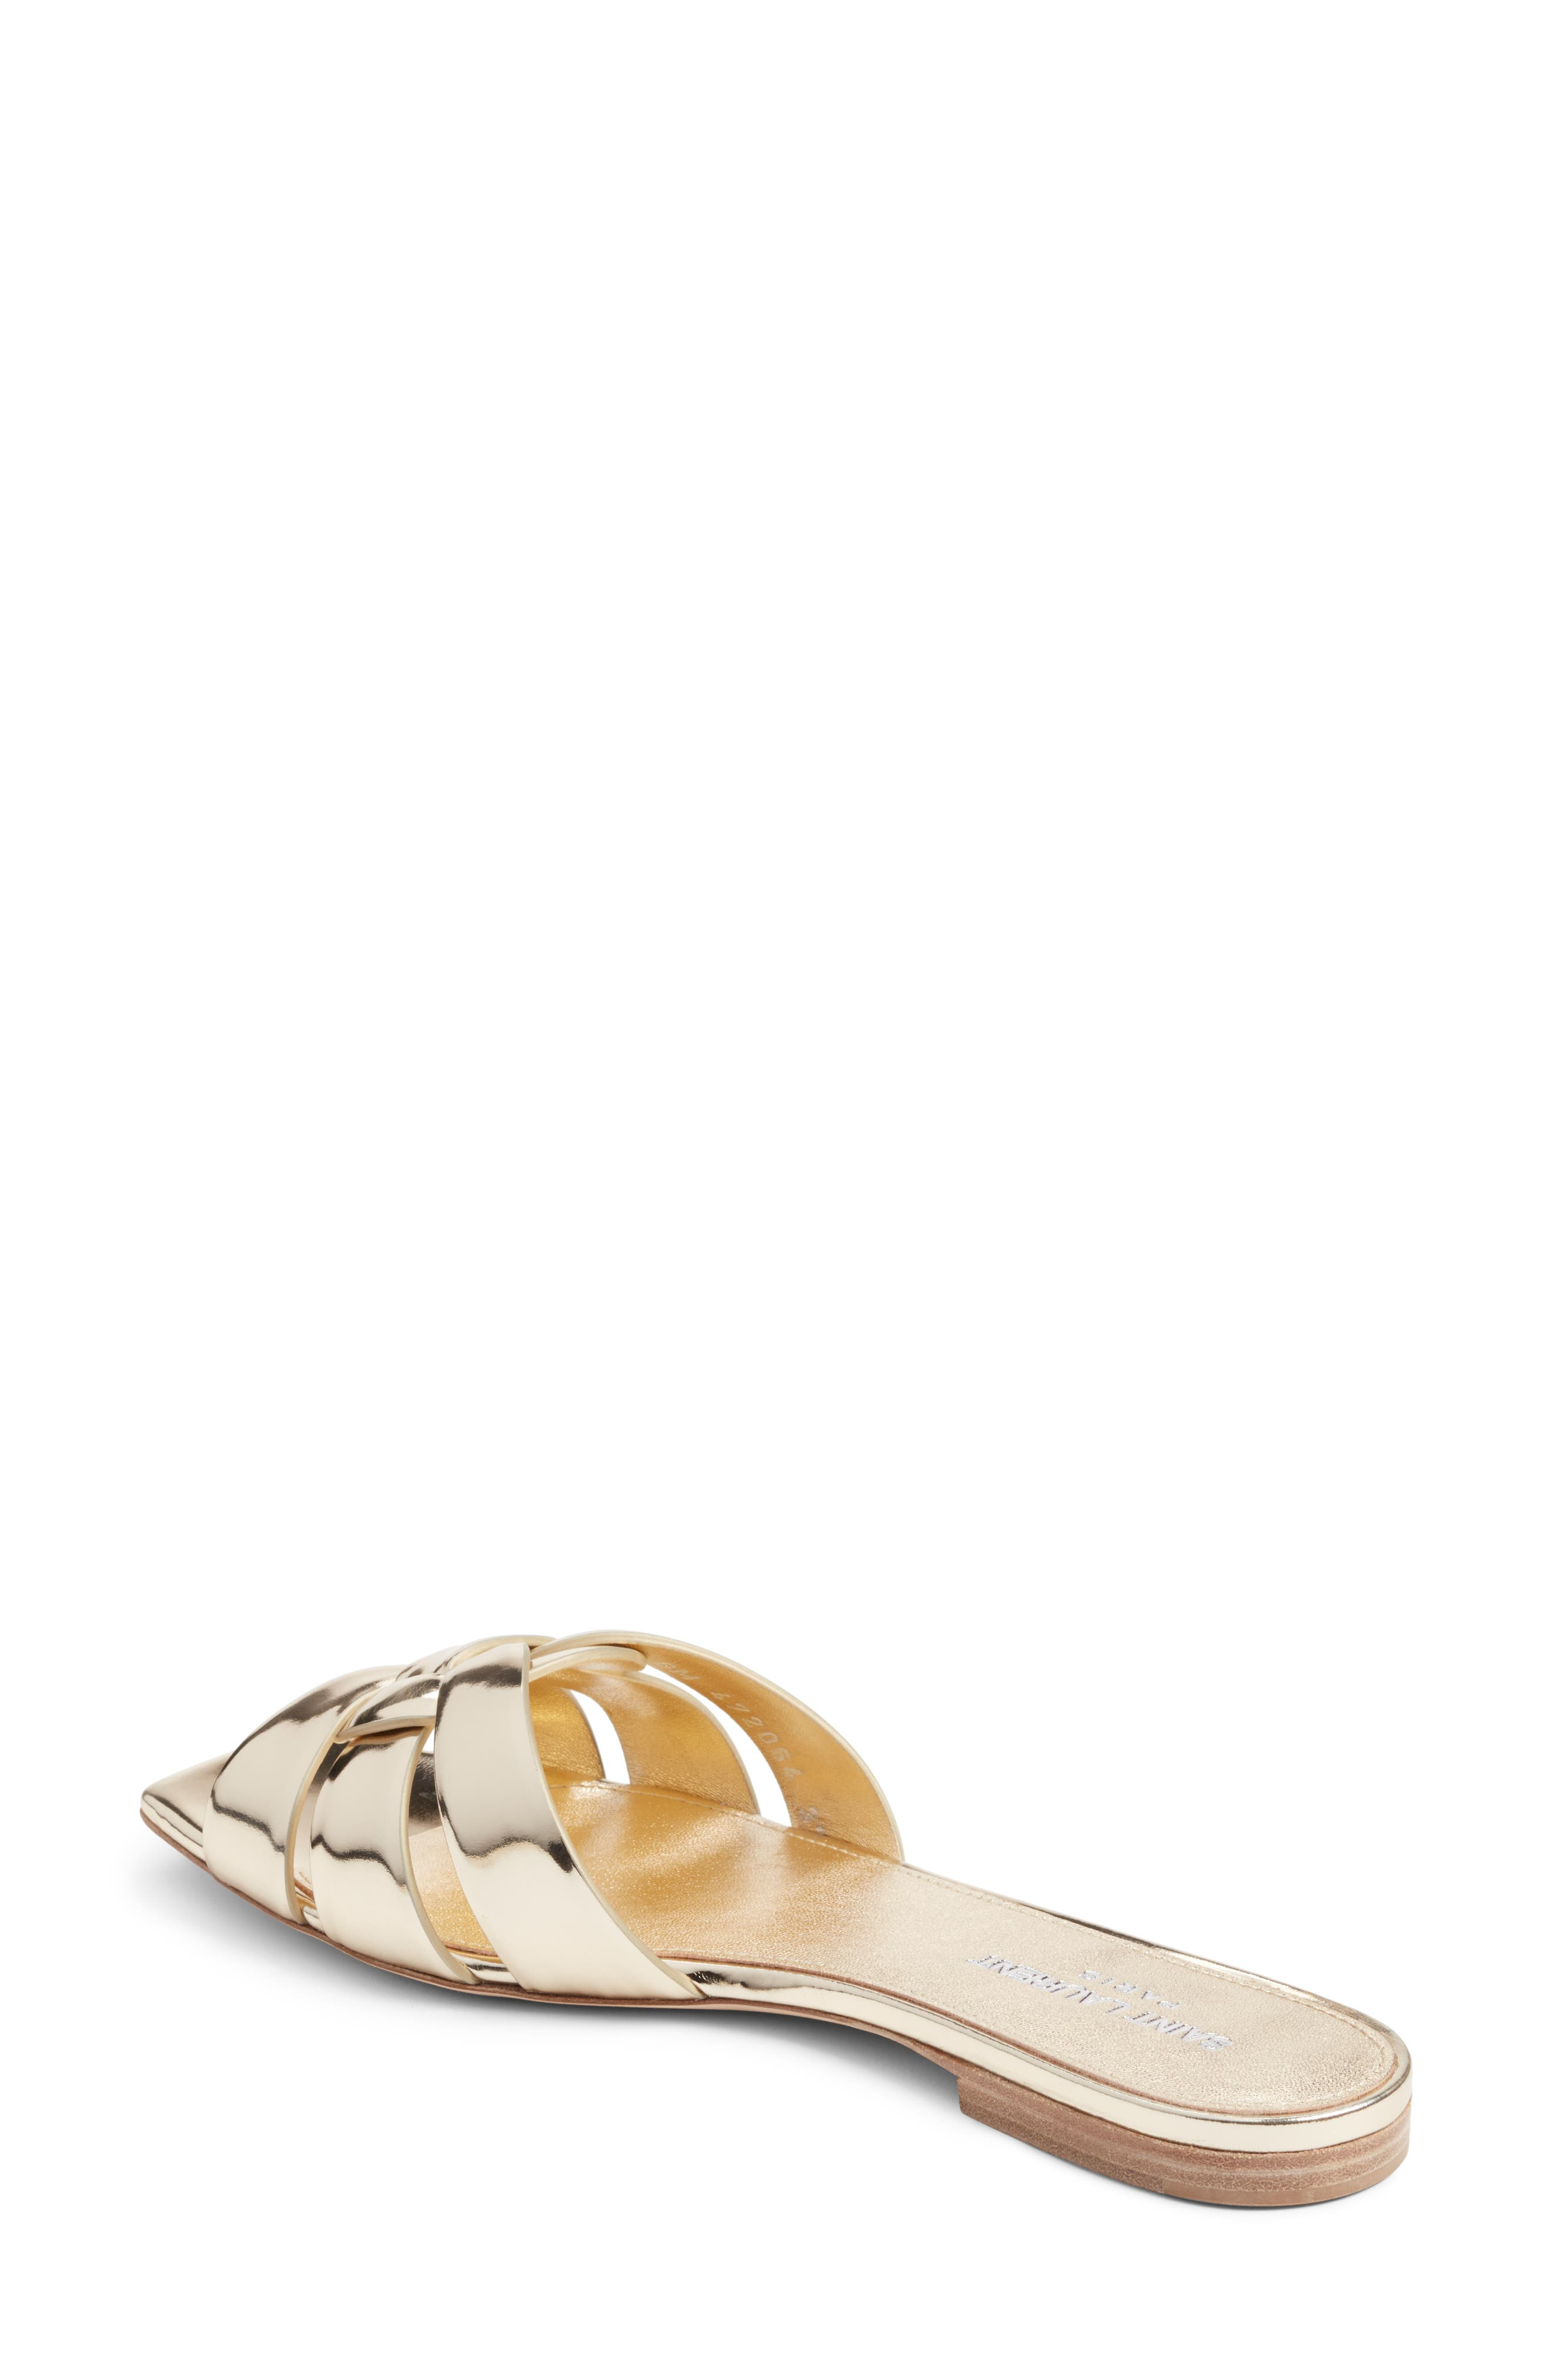 Tribute Slide Sandal,                             Alternate thumbnail 2, color,                             Metallic Gold